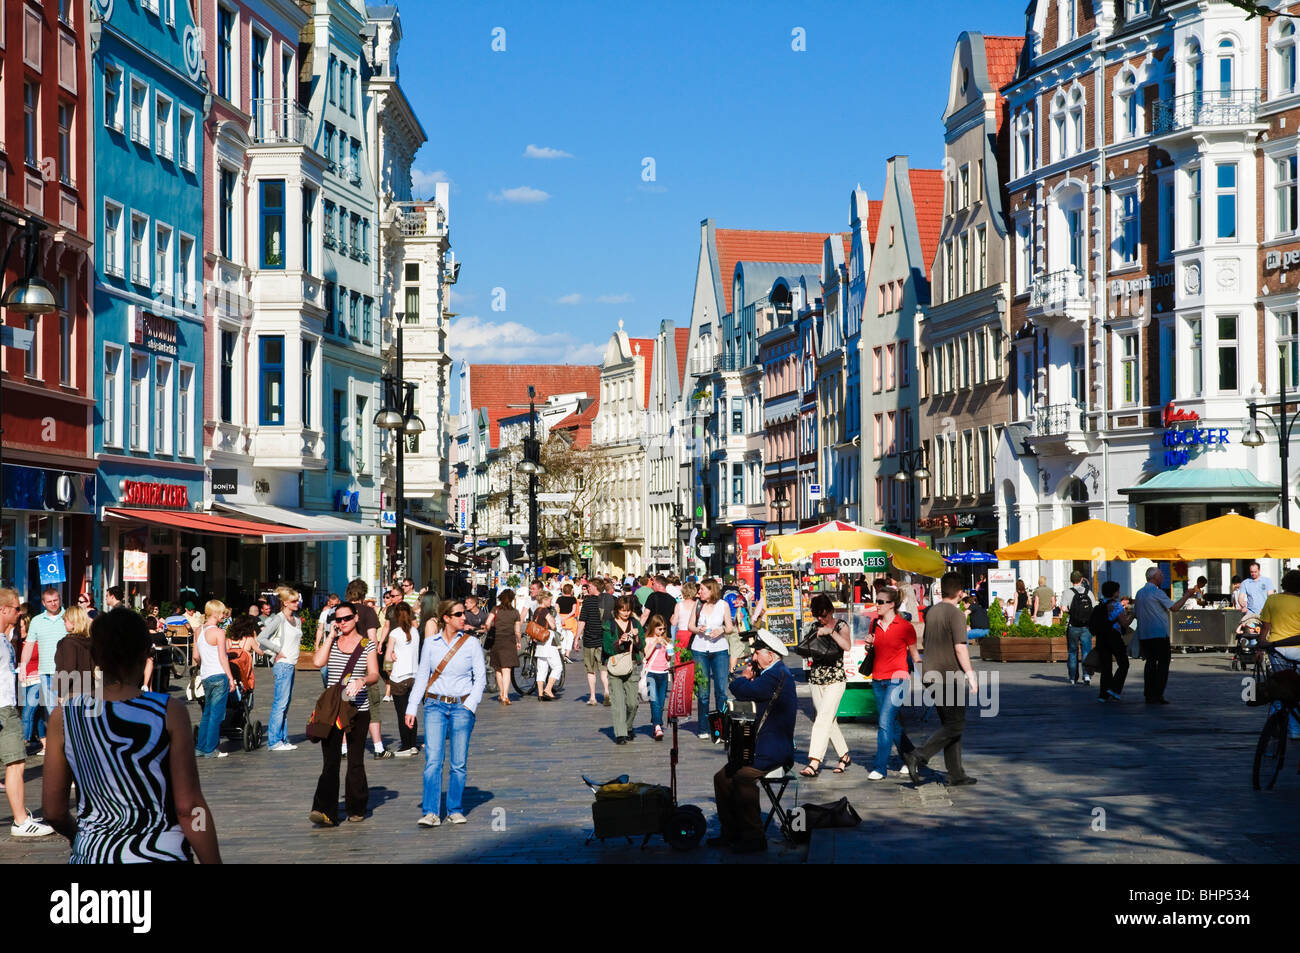 Rostock Shopping Shopping Street Kroepeliner Strasse Old Town Rostock Stock Photo